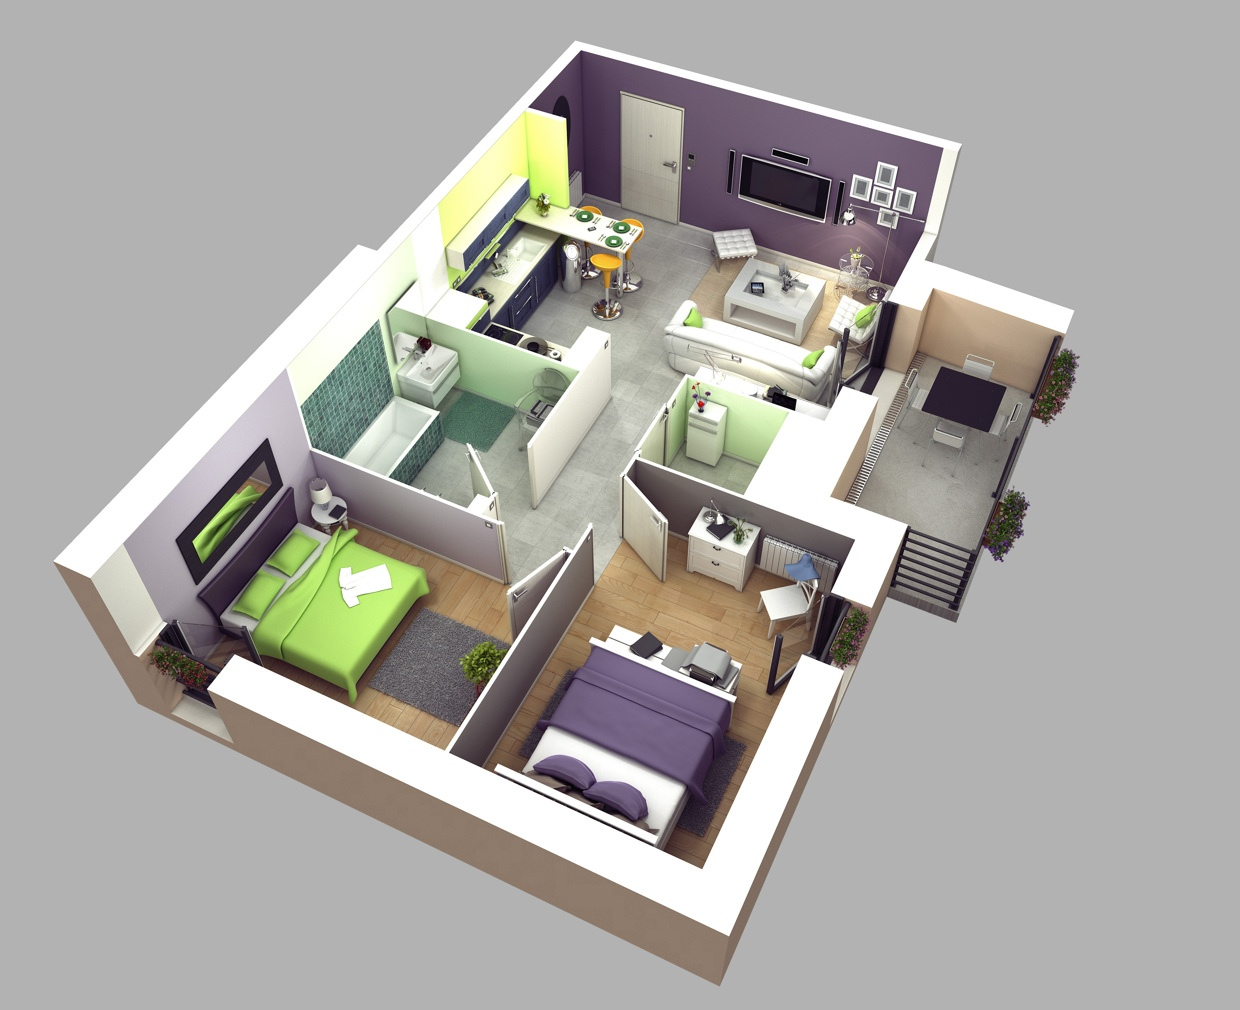 50 3d floor plans lay out designs for 2 bedroom house or for 2 bedroom house plans 3d